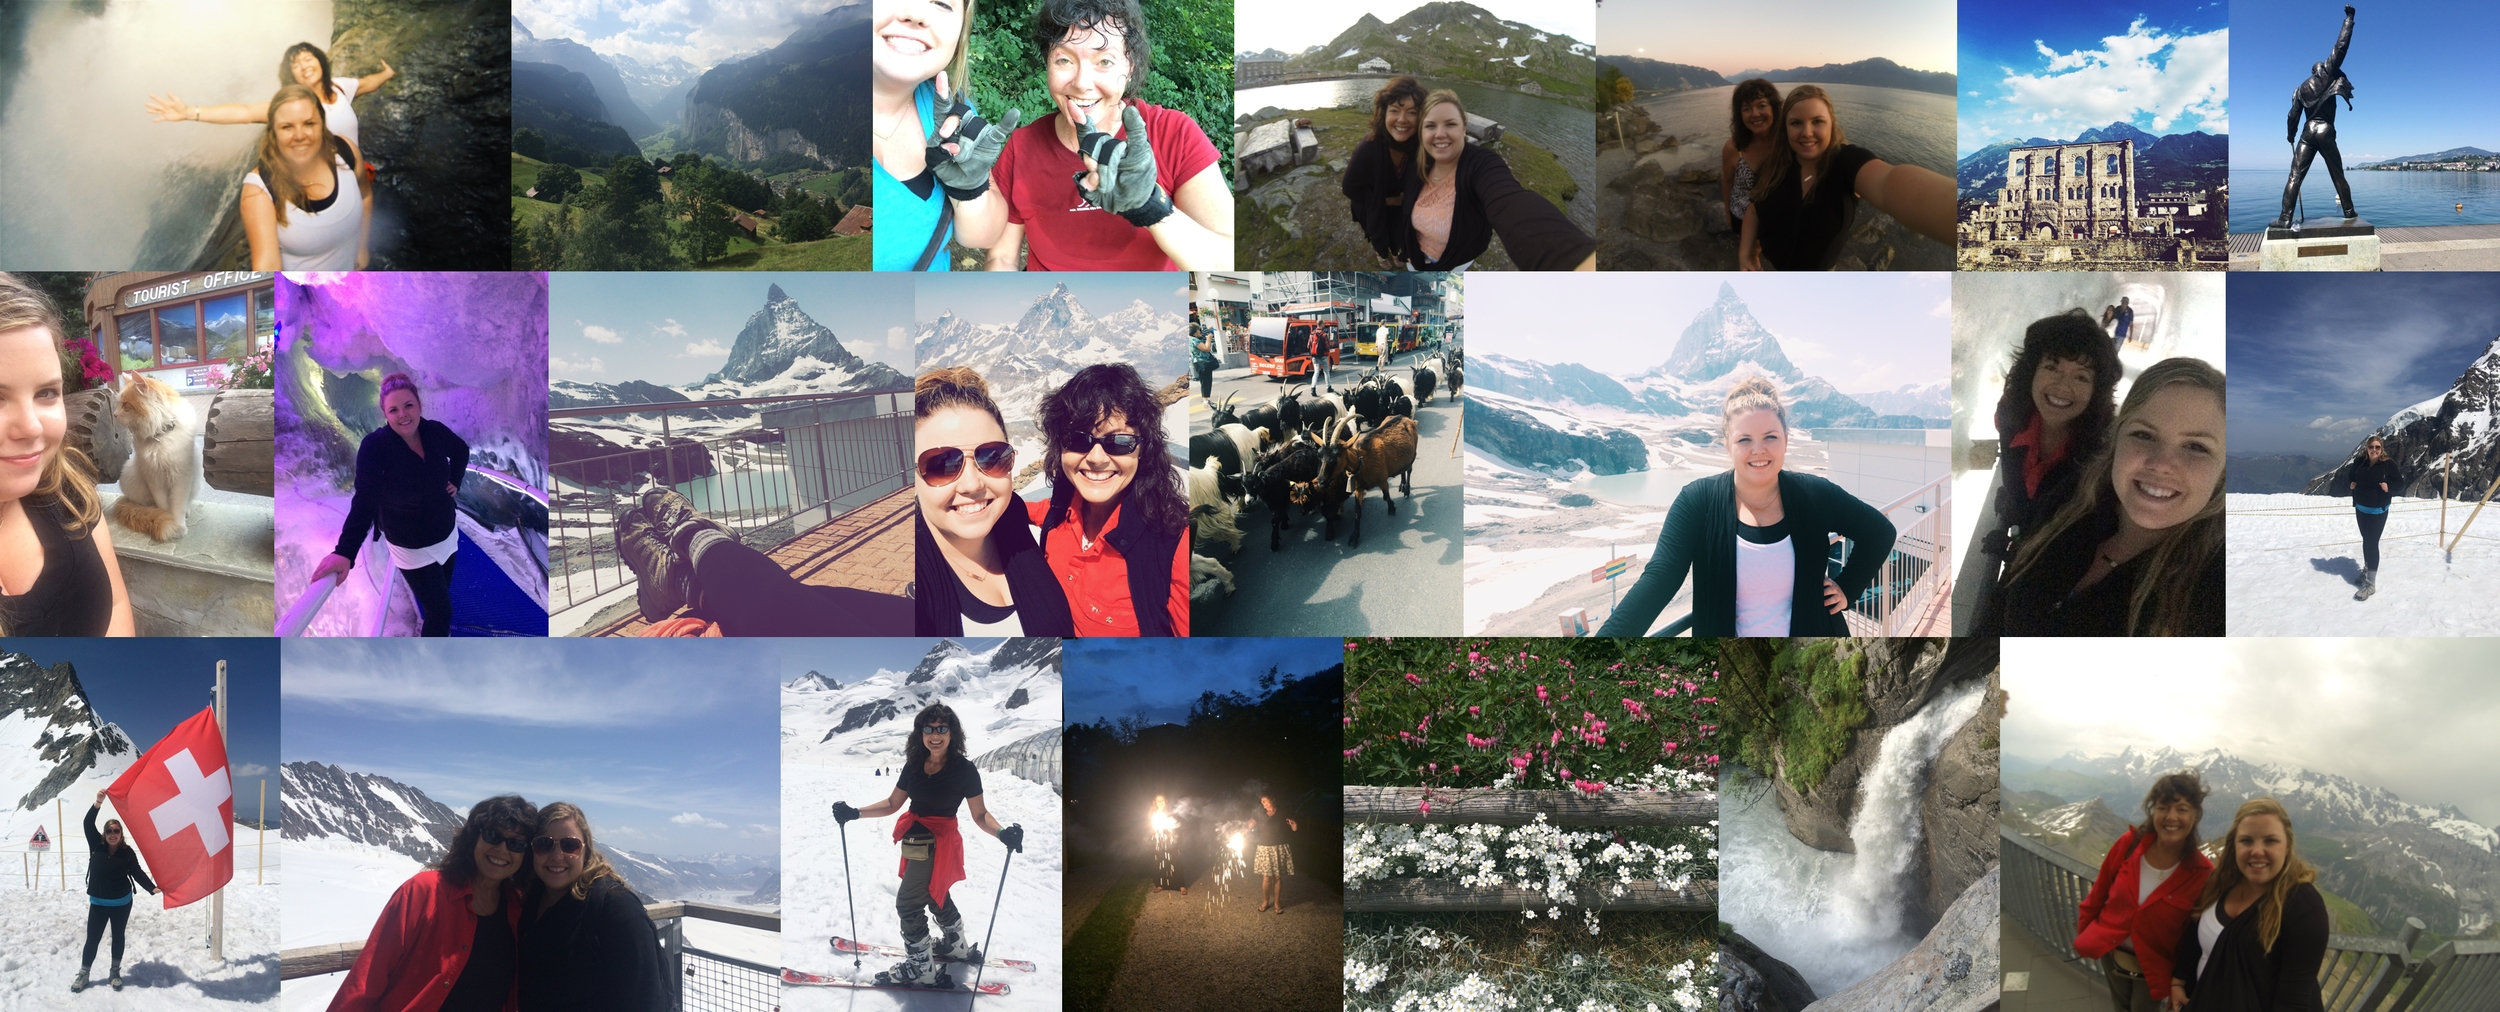 swiss collage.jpg